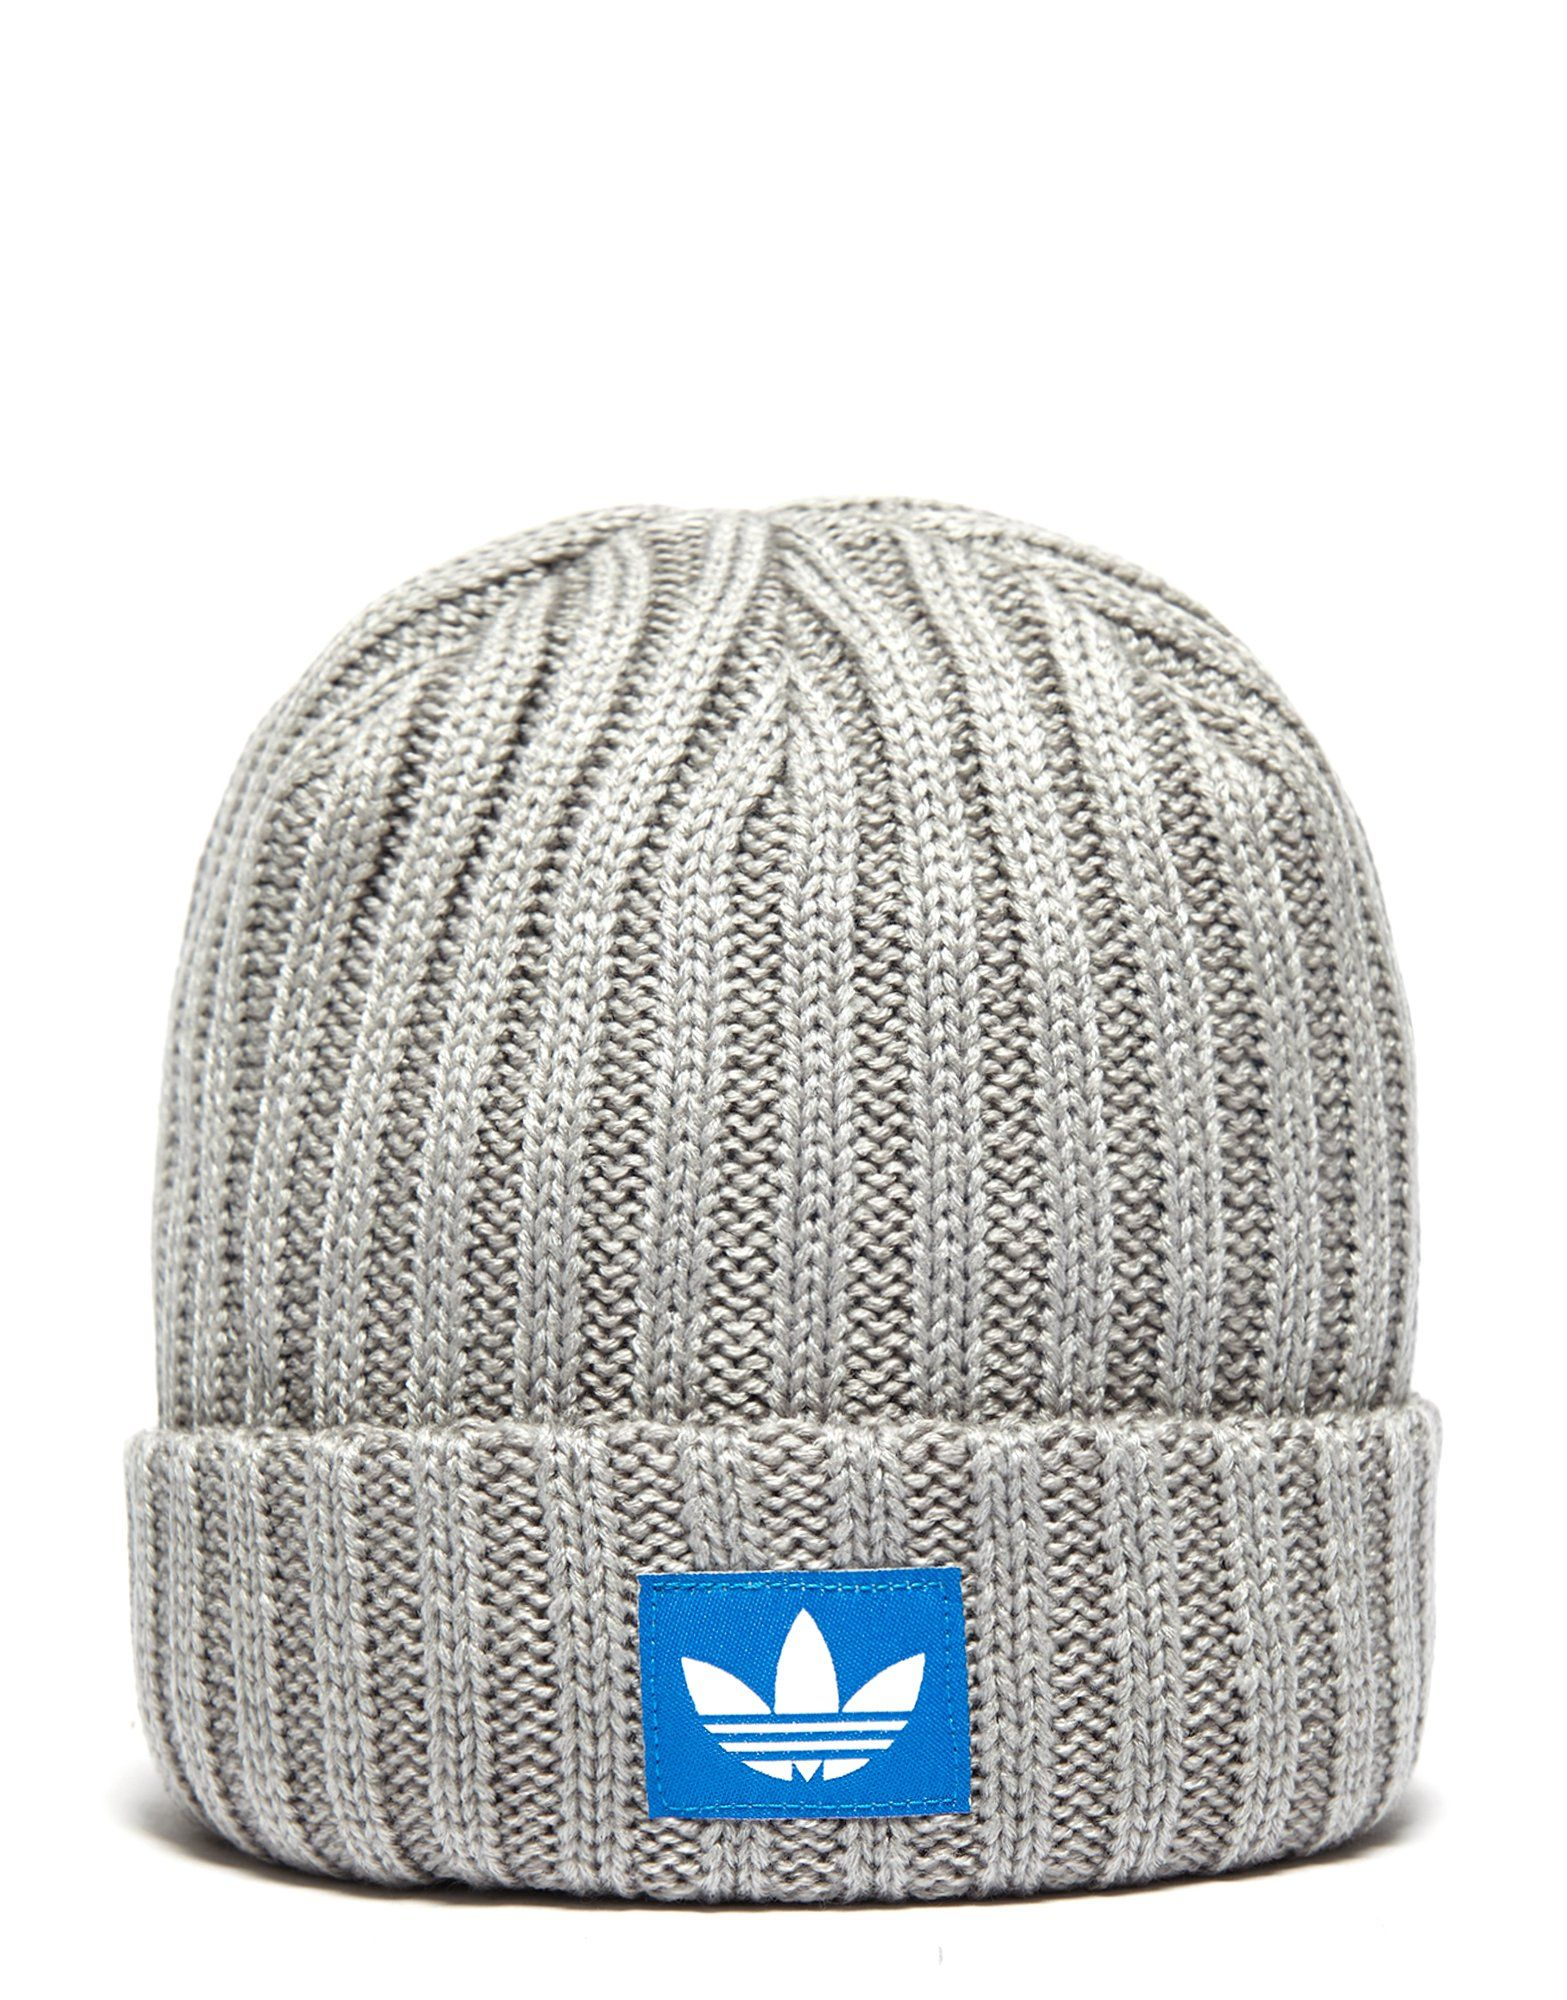 8d01df7828d adidas Originals Trefoil Fisherman Beanie